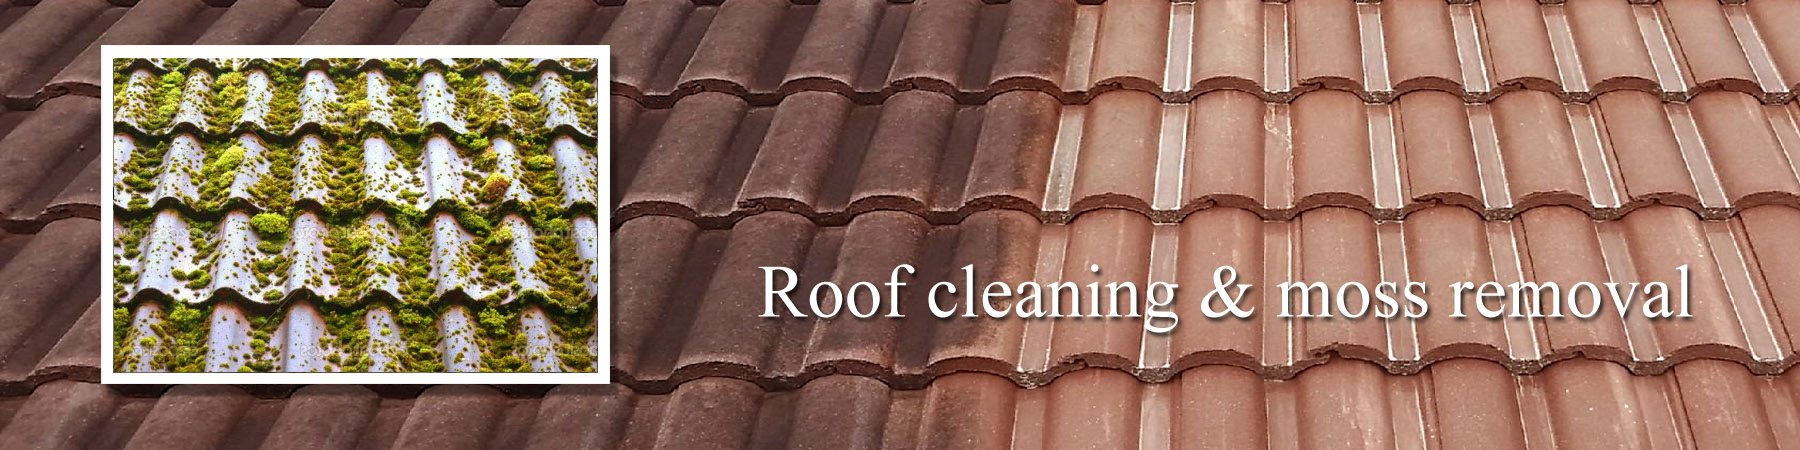 Roof cleaning West Sussex J R Cleaning